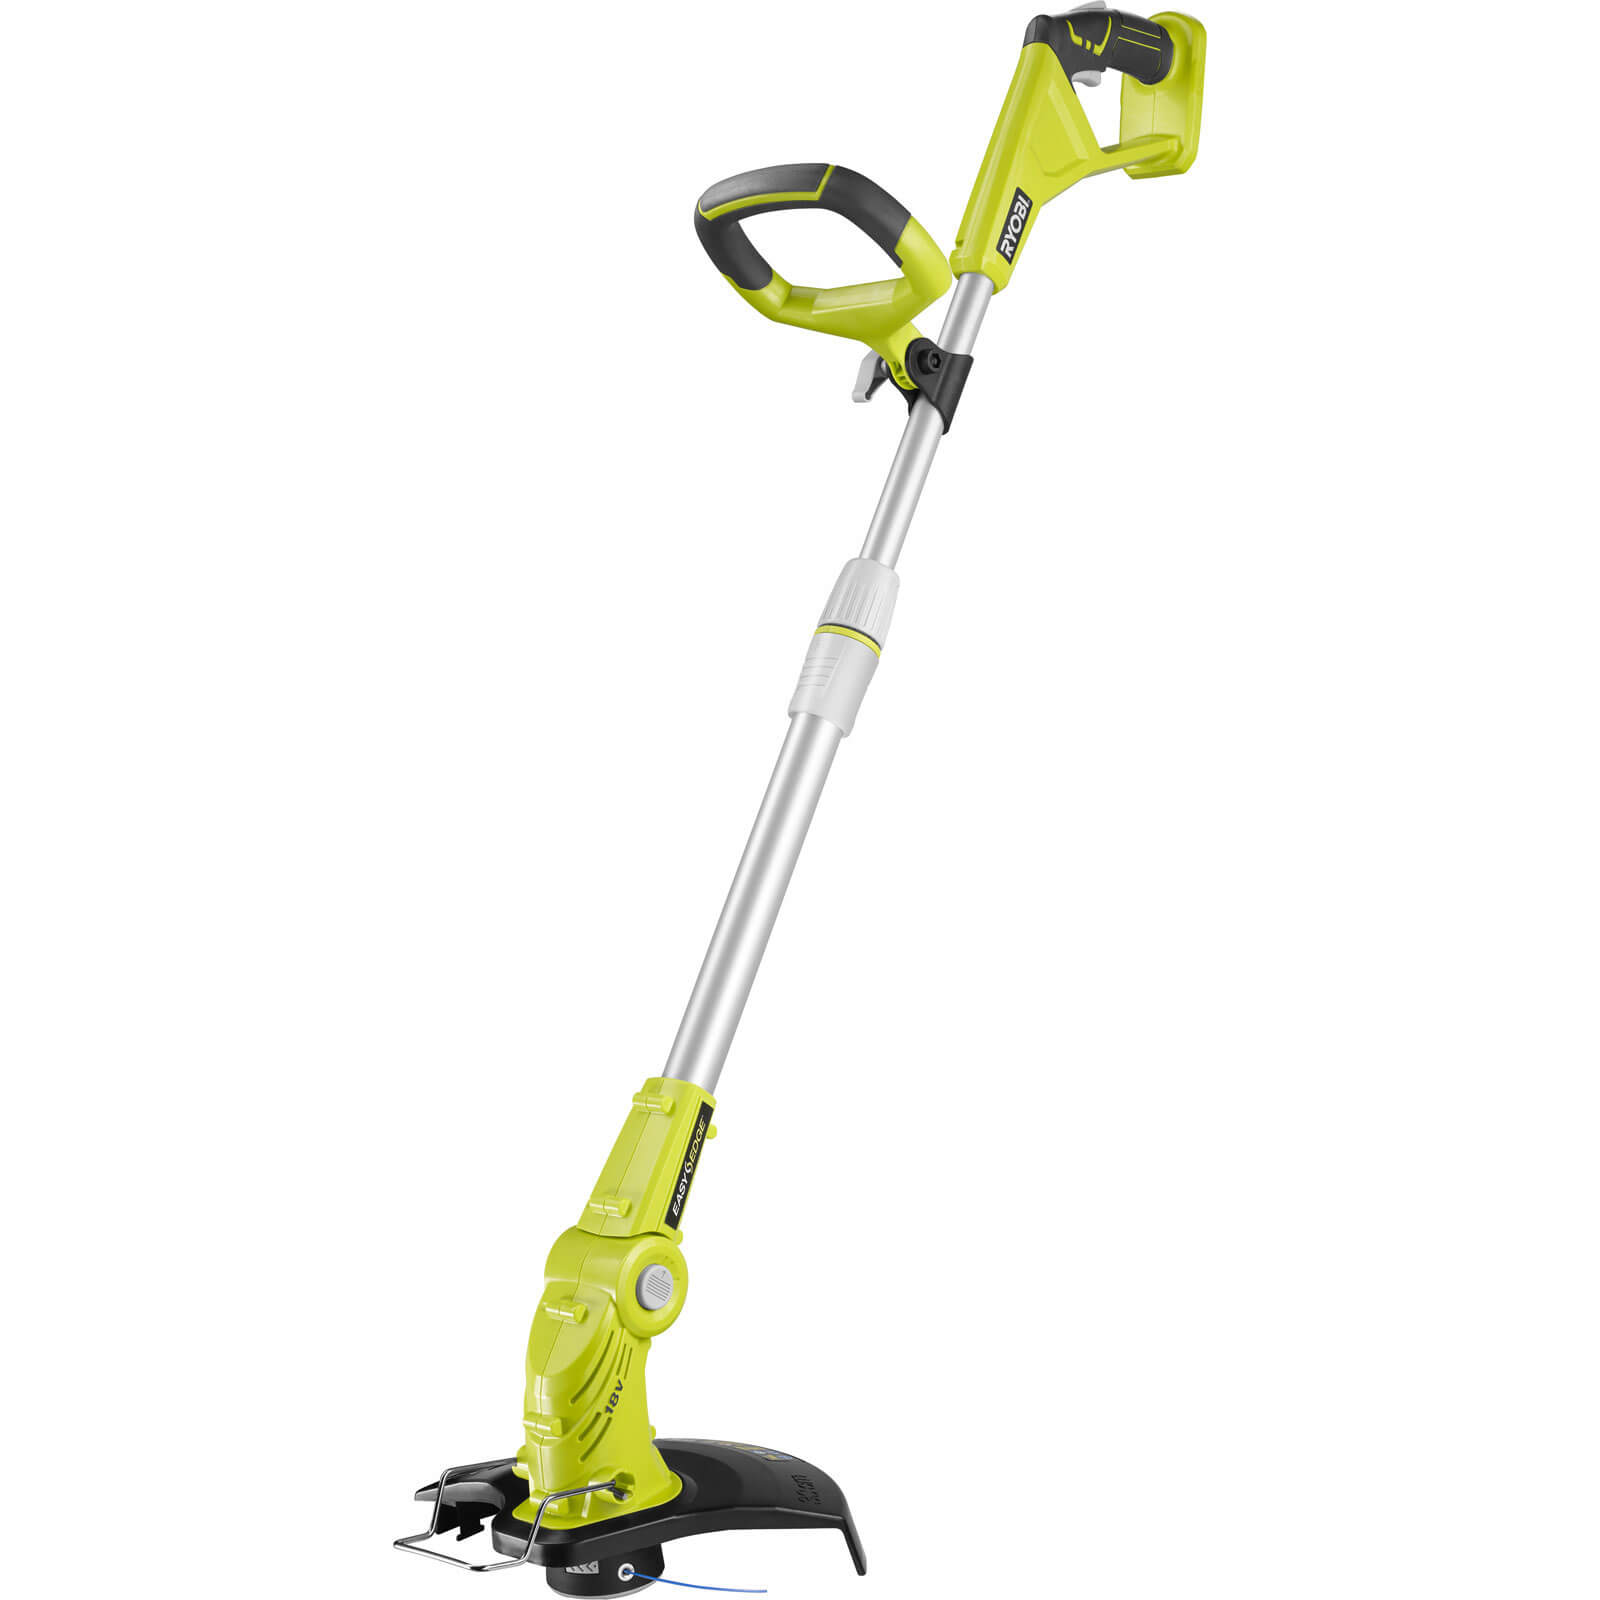 Ryobi OLT1831S ONE+ 18v Cordless Grass Trimmer 300mm Cut Width without Battery or Charger - Requires ONE+ Battery/Charger